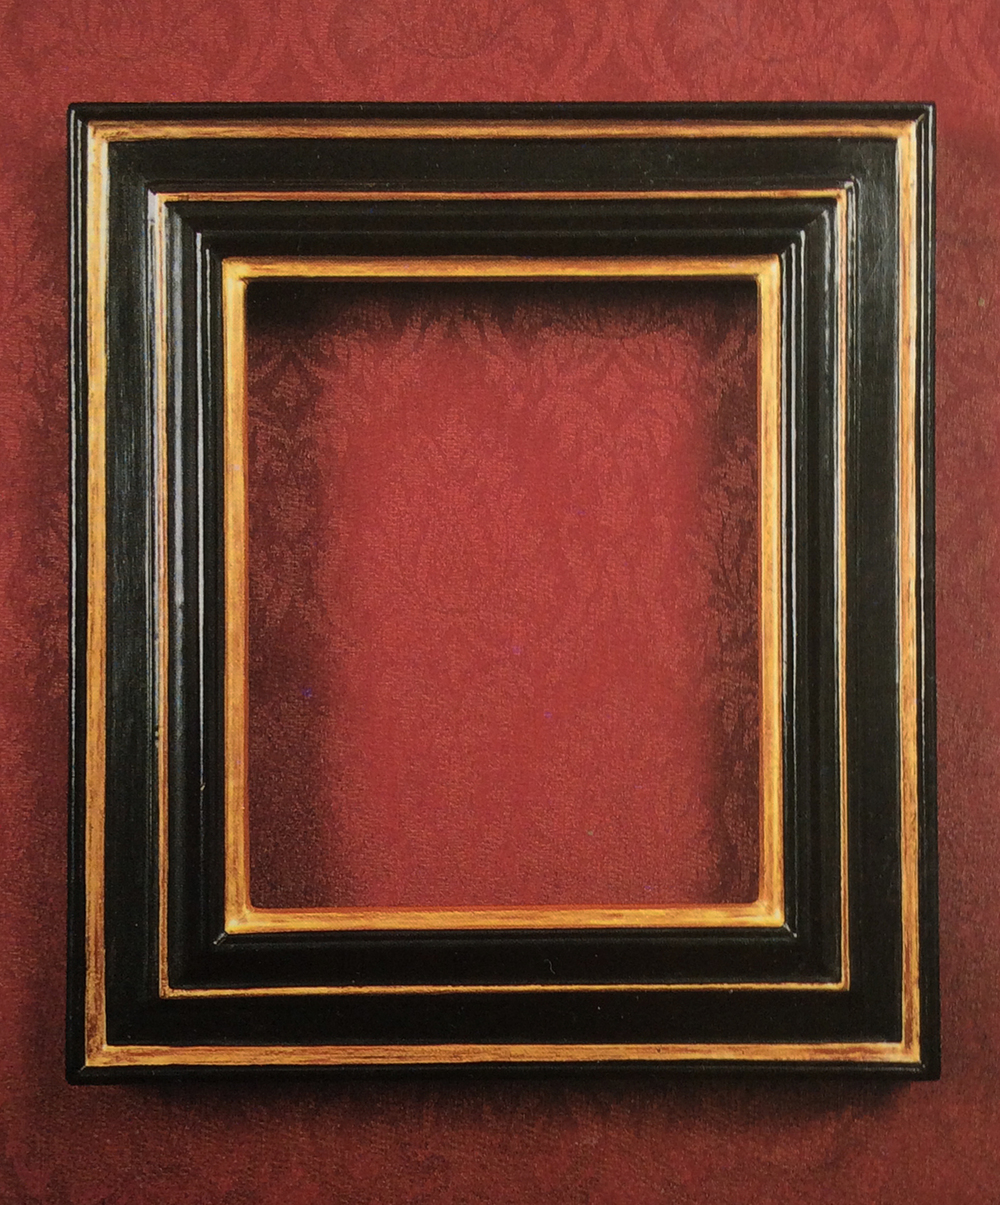 I also created all my own custom-made frames for each of my house and garden portraits. These were gessoed, ebonised, gilded, waxed and distressed to resemble European frames from the mid 17th century.